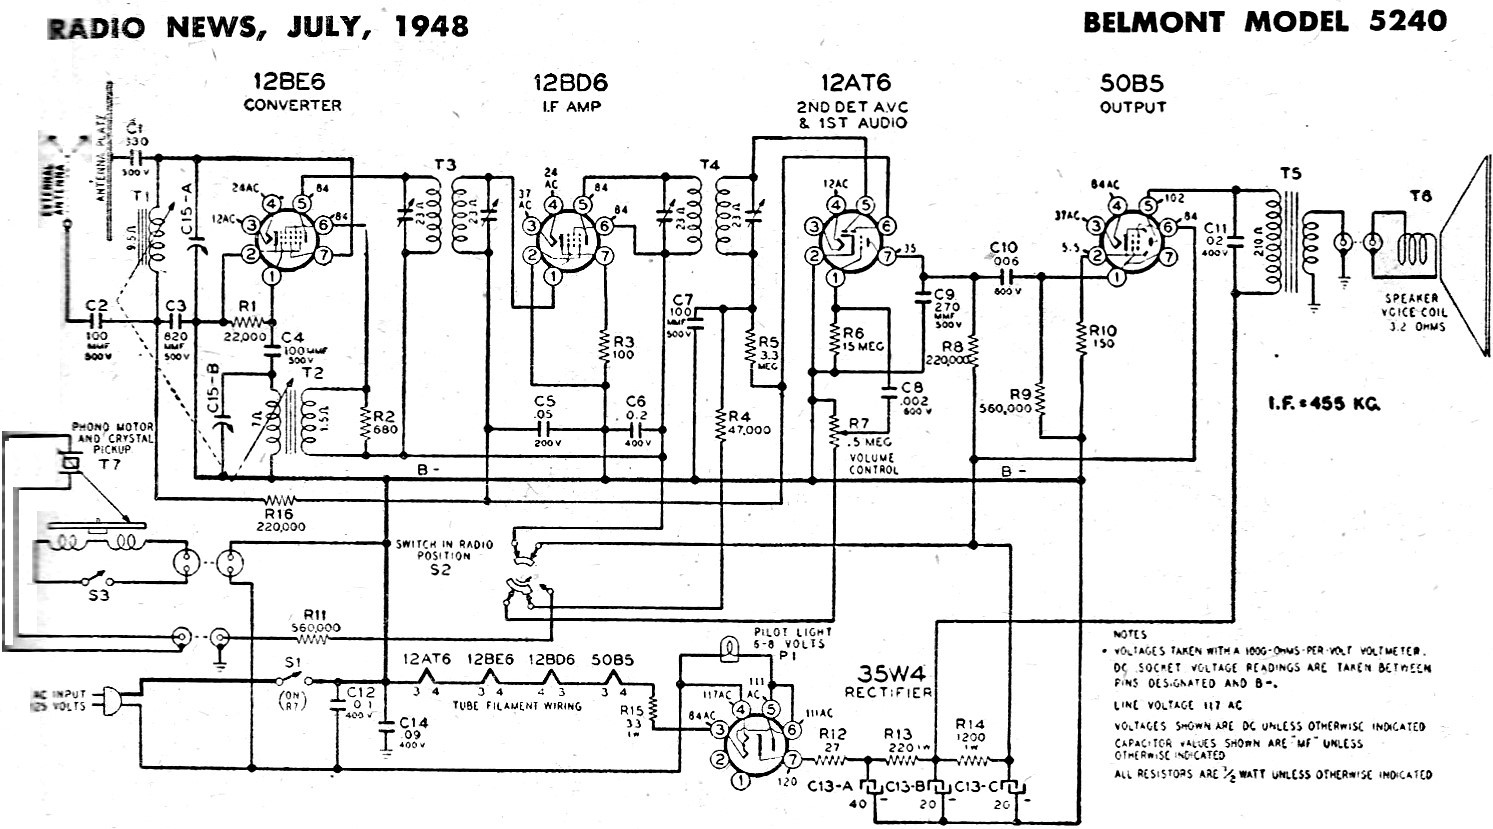 belmont model 5240 schematic  u0026 parts list  july 1948 radio